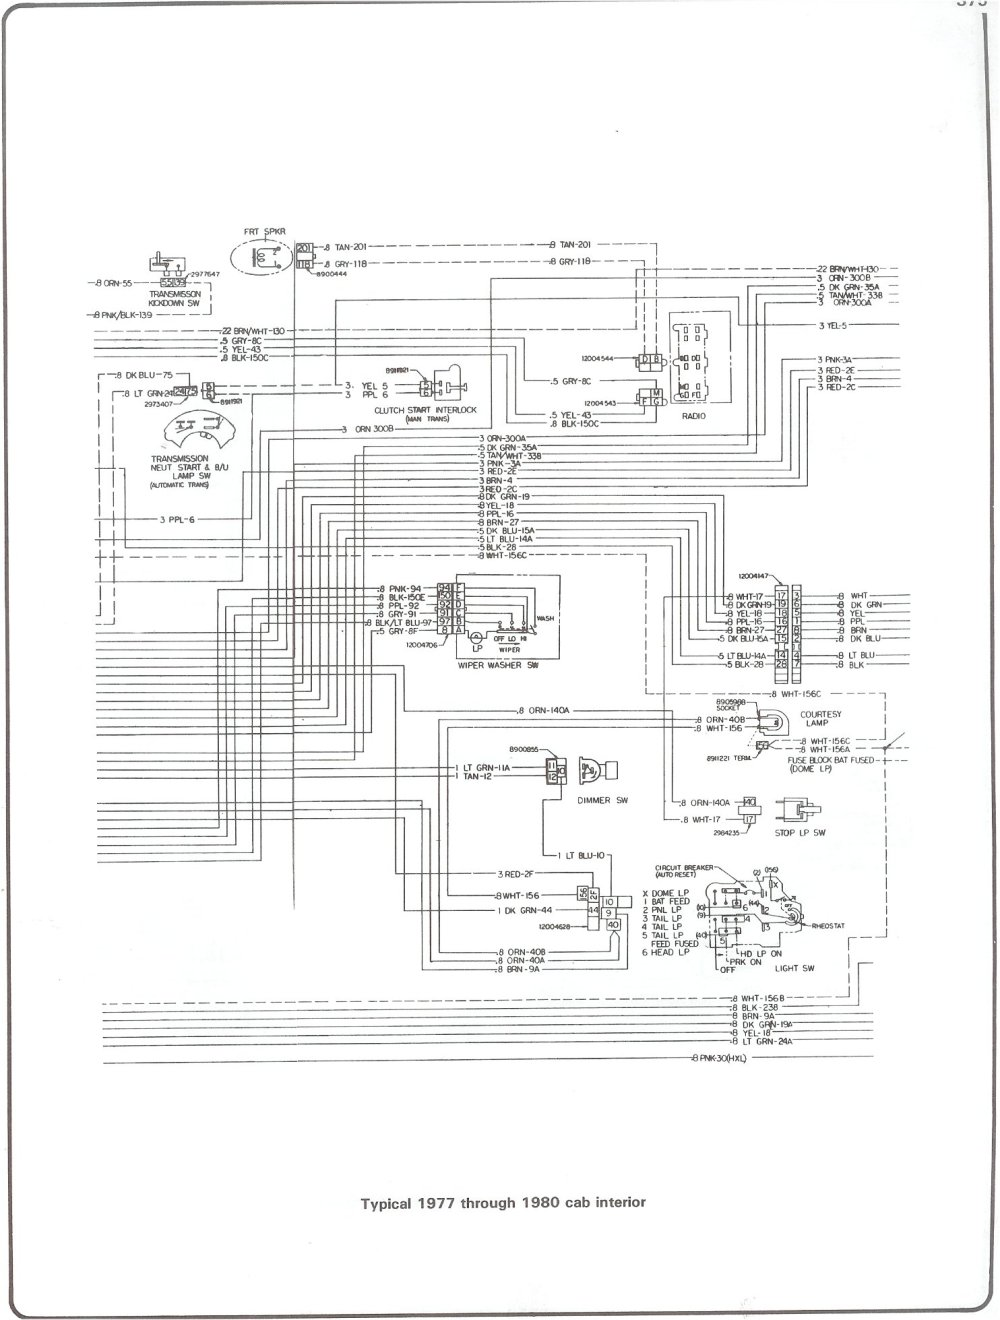 medium resolution of 77 80 cab interior complete 73 87 wiring diagrams 77 80 cab interior gm hei schematic